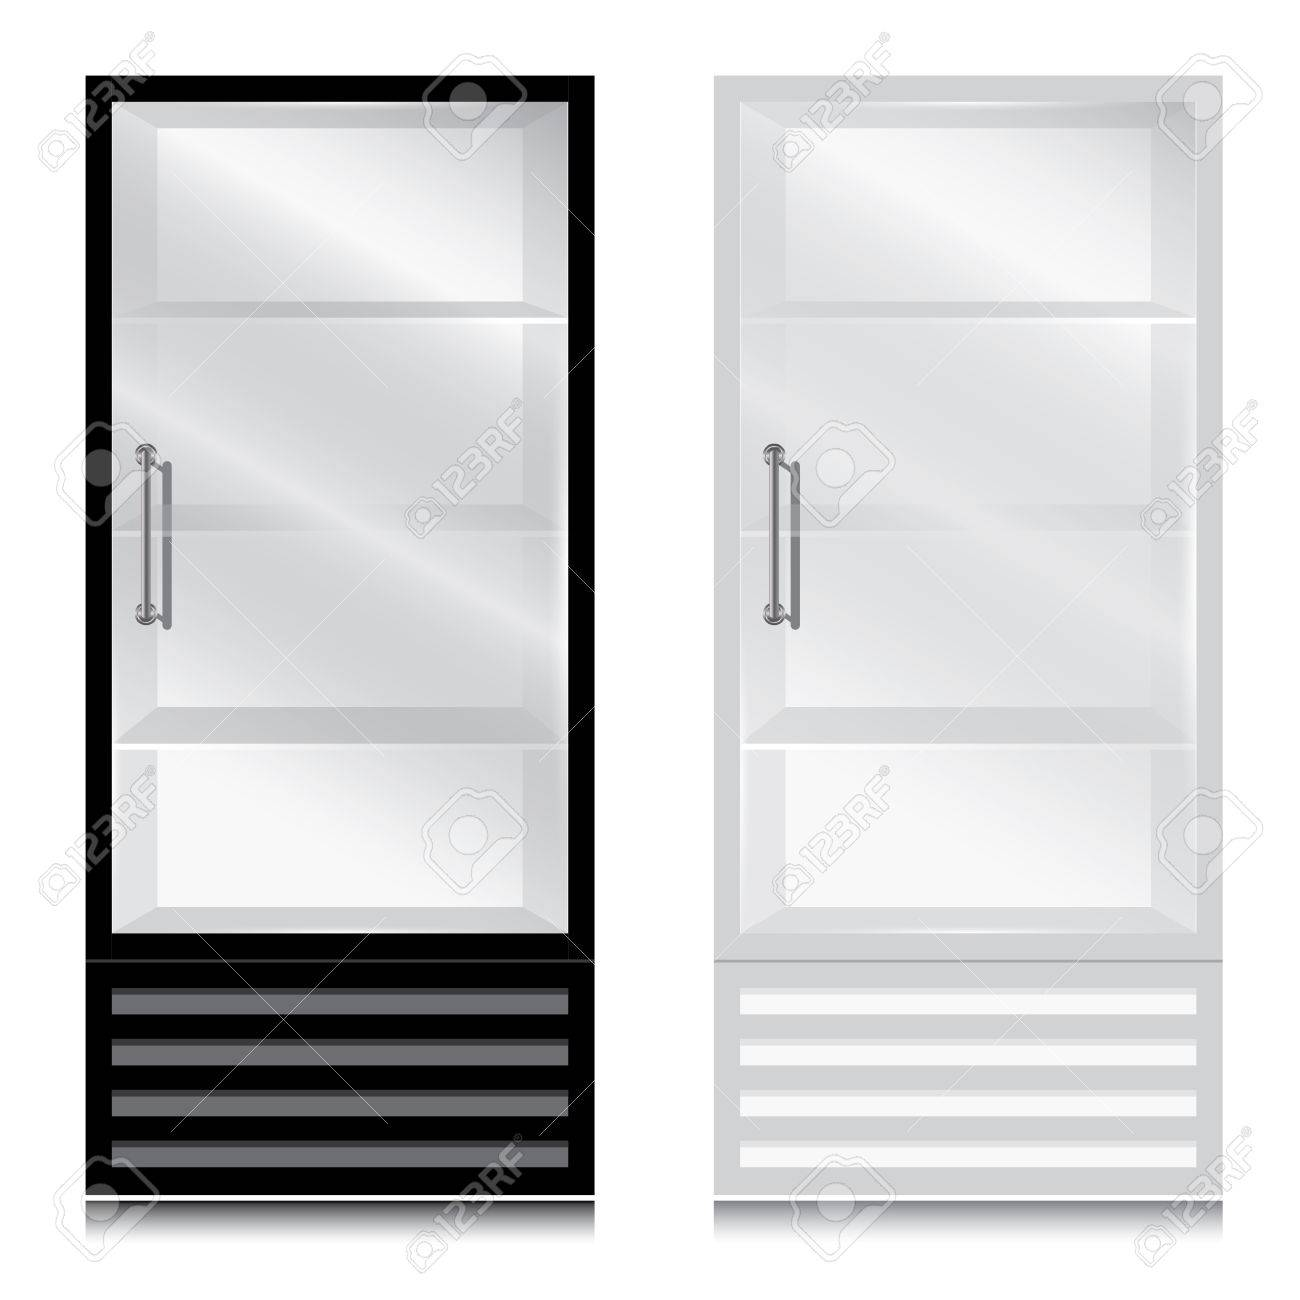 Glass Door Fridge With Handle Open On The Right Black And